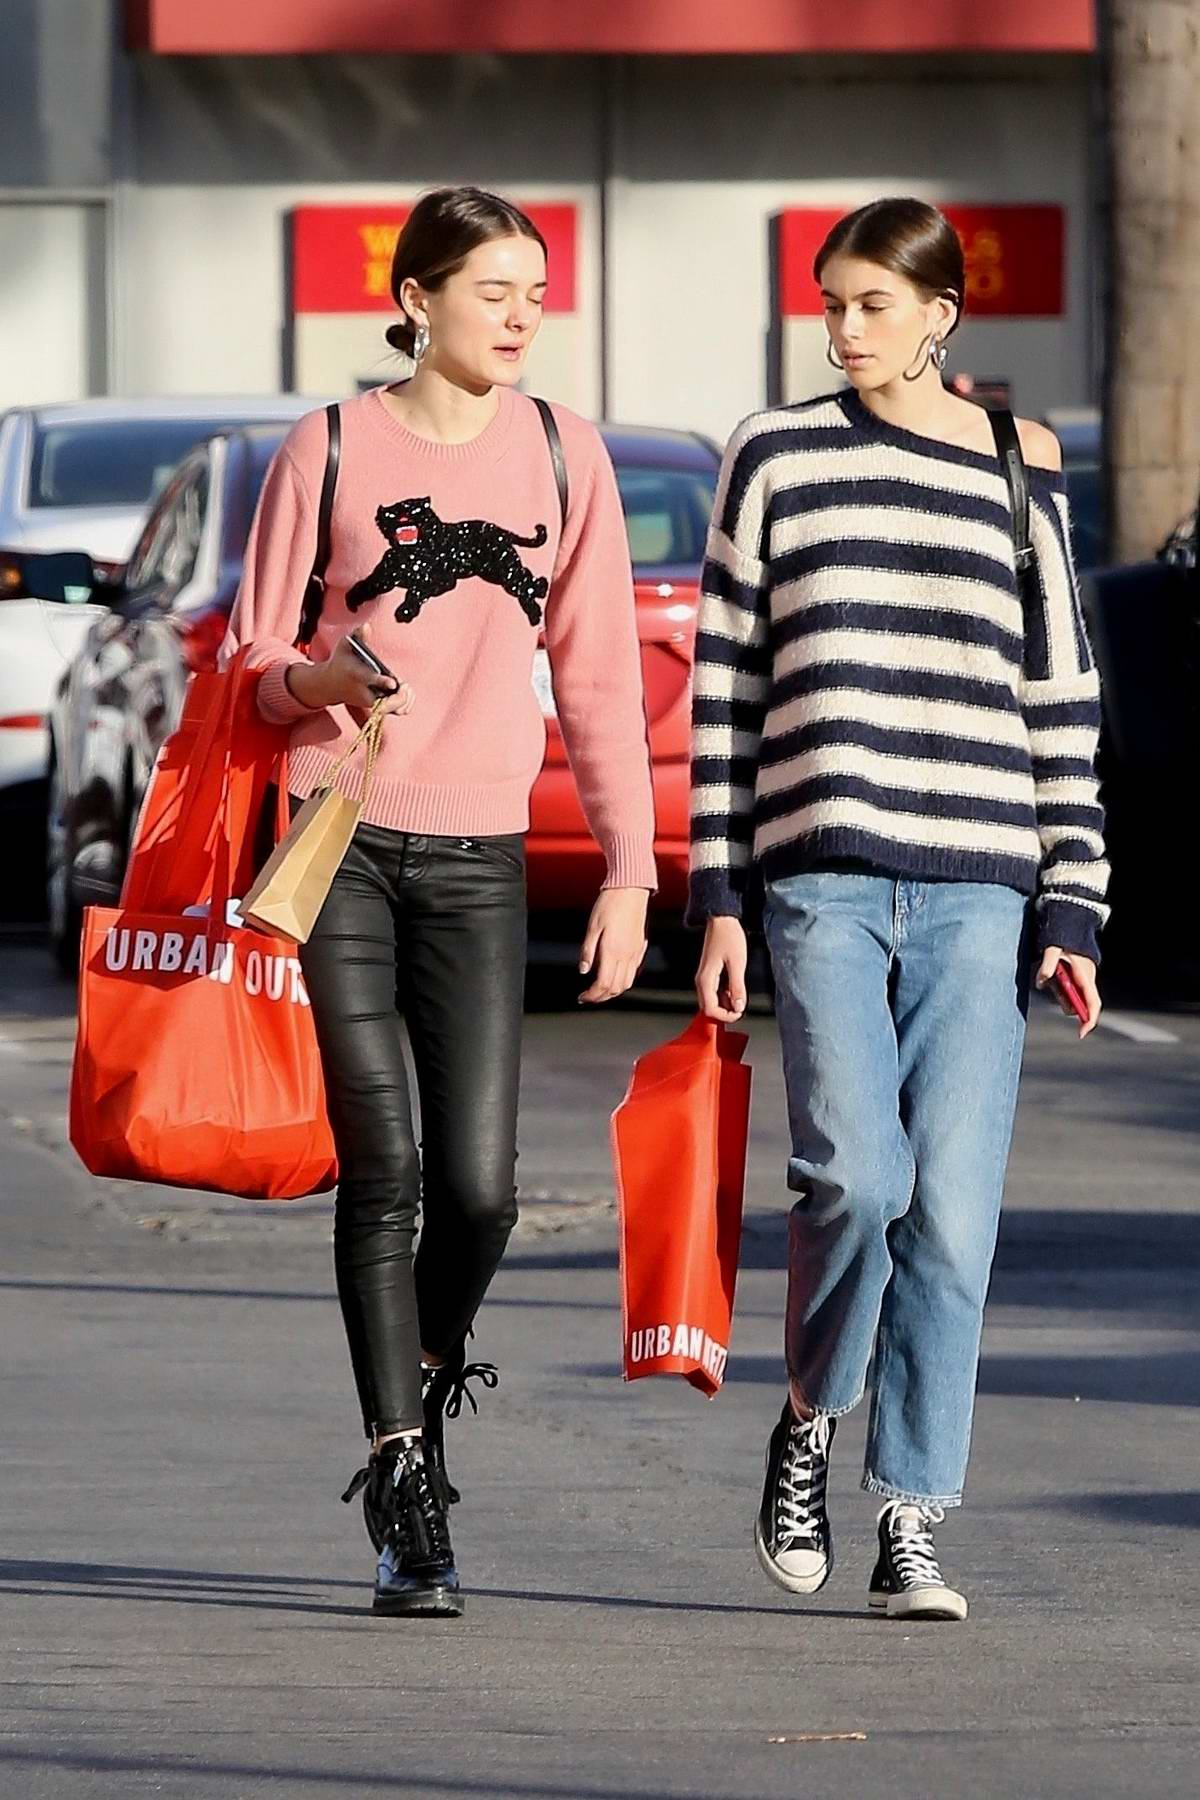 Kaia Gerber shops at Urban Outfitters with a friend in Malibu, California